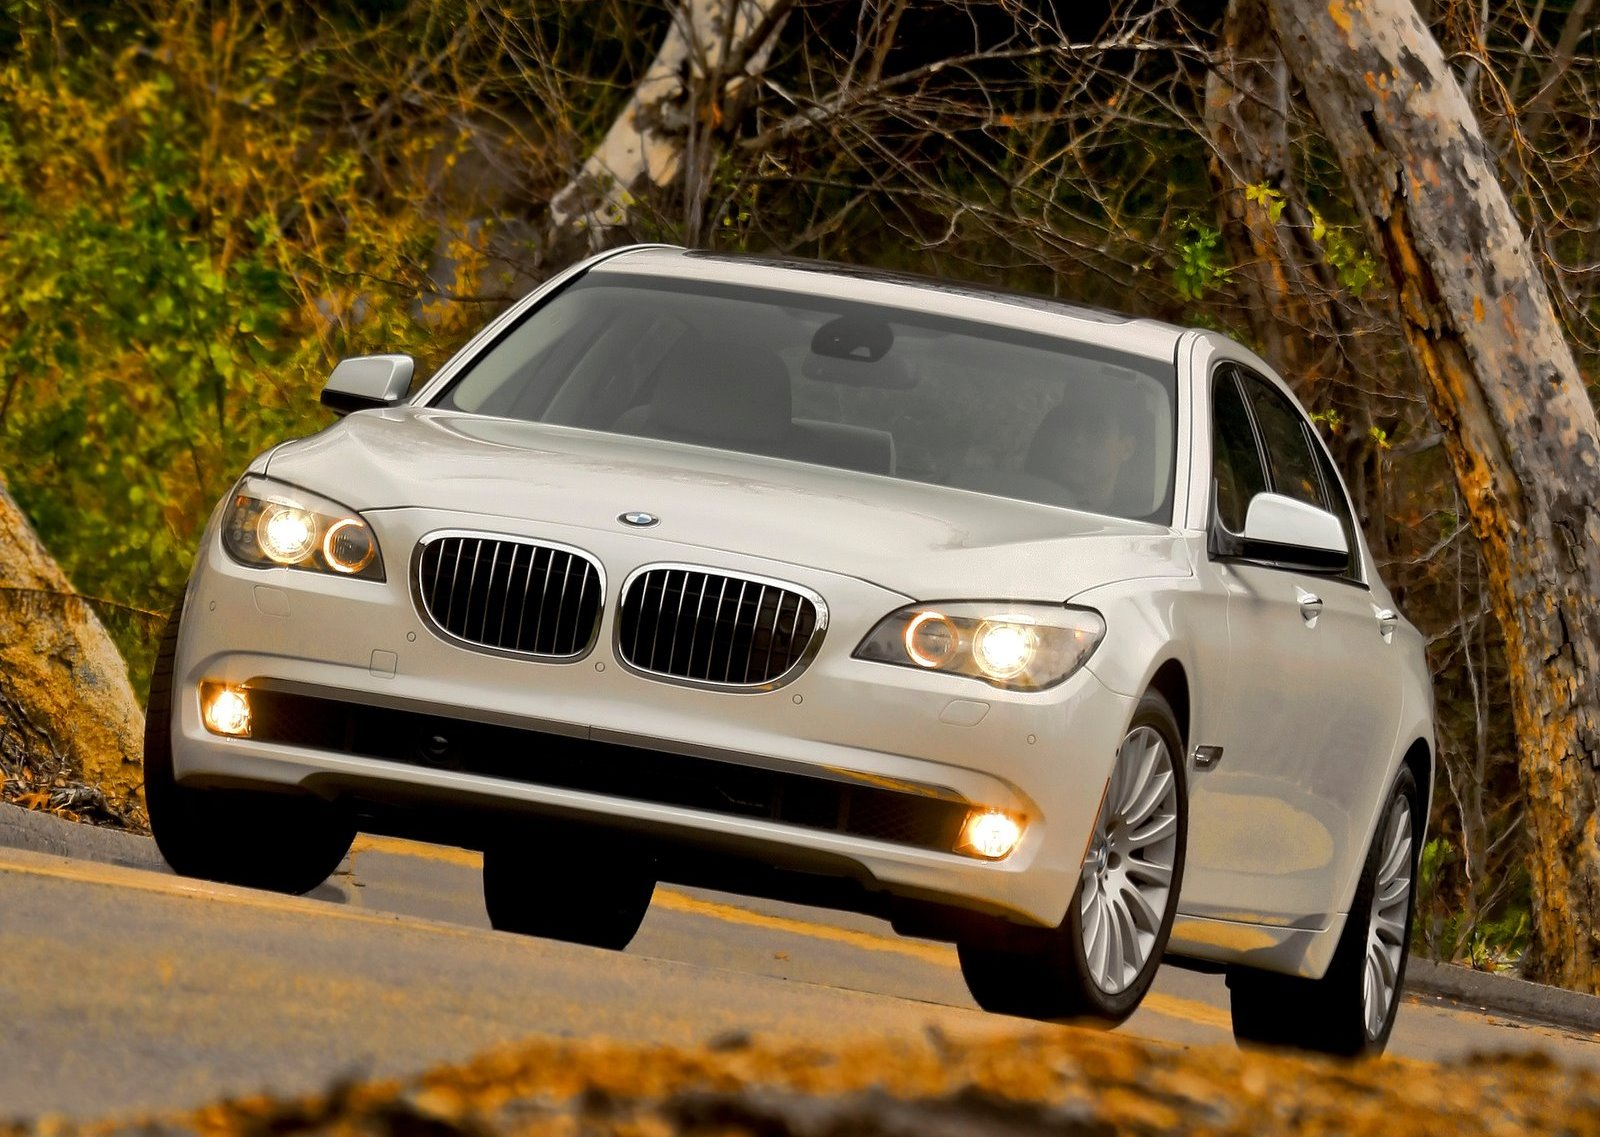 Bmw-7_series_f01_f02_mp2_pic_81171